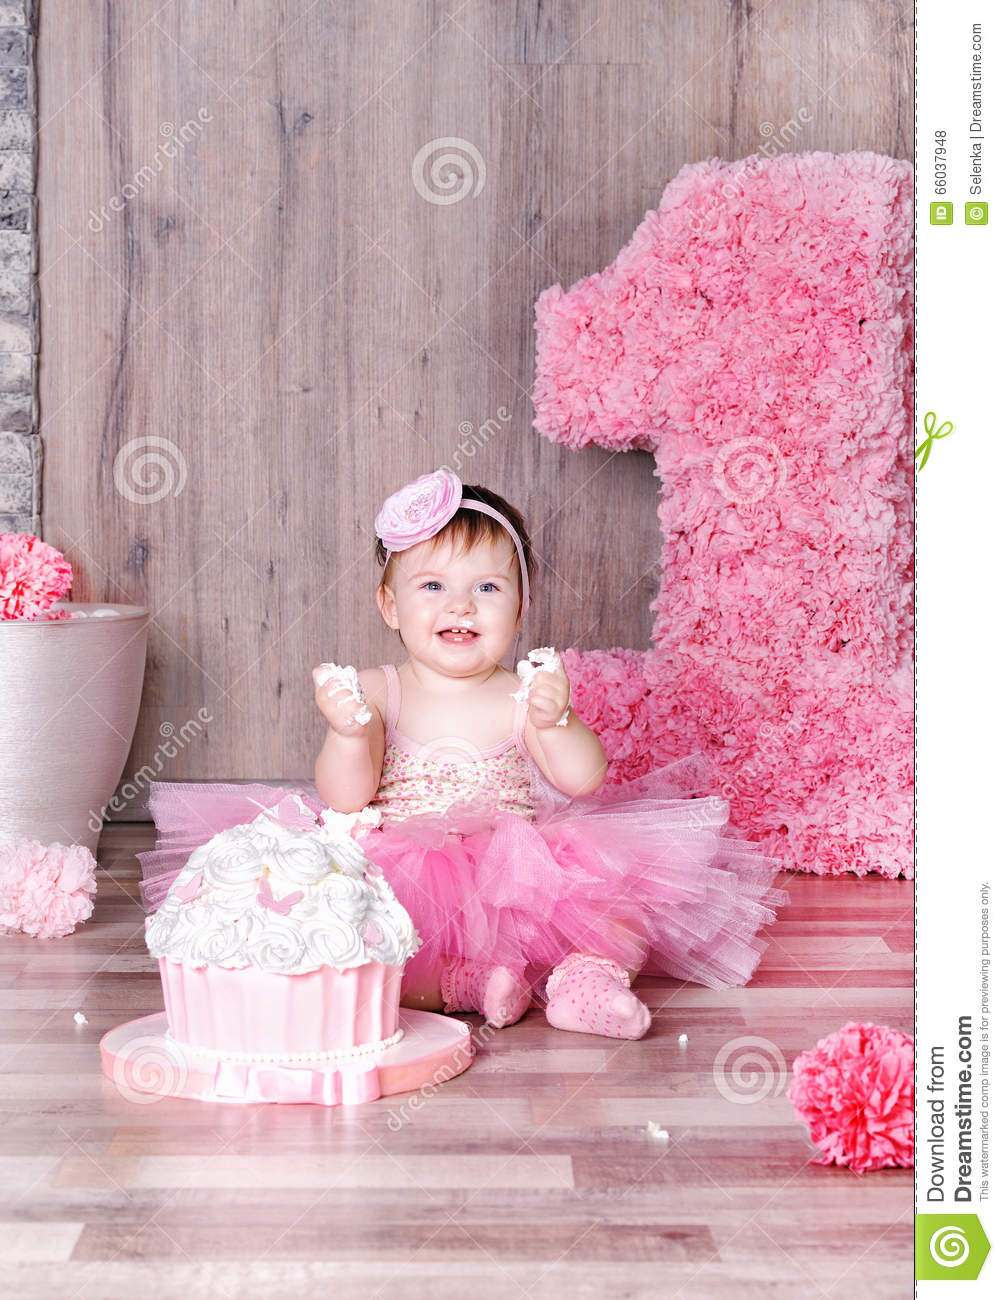 Birthday cake designs for baby girl 1st birthday cake ideas for ...